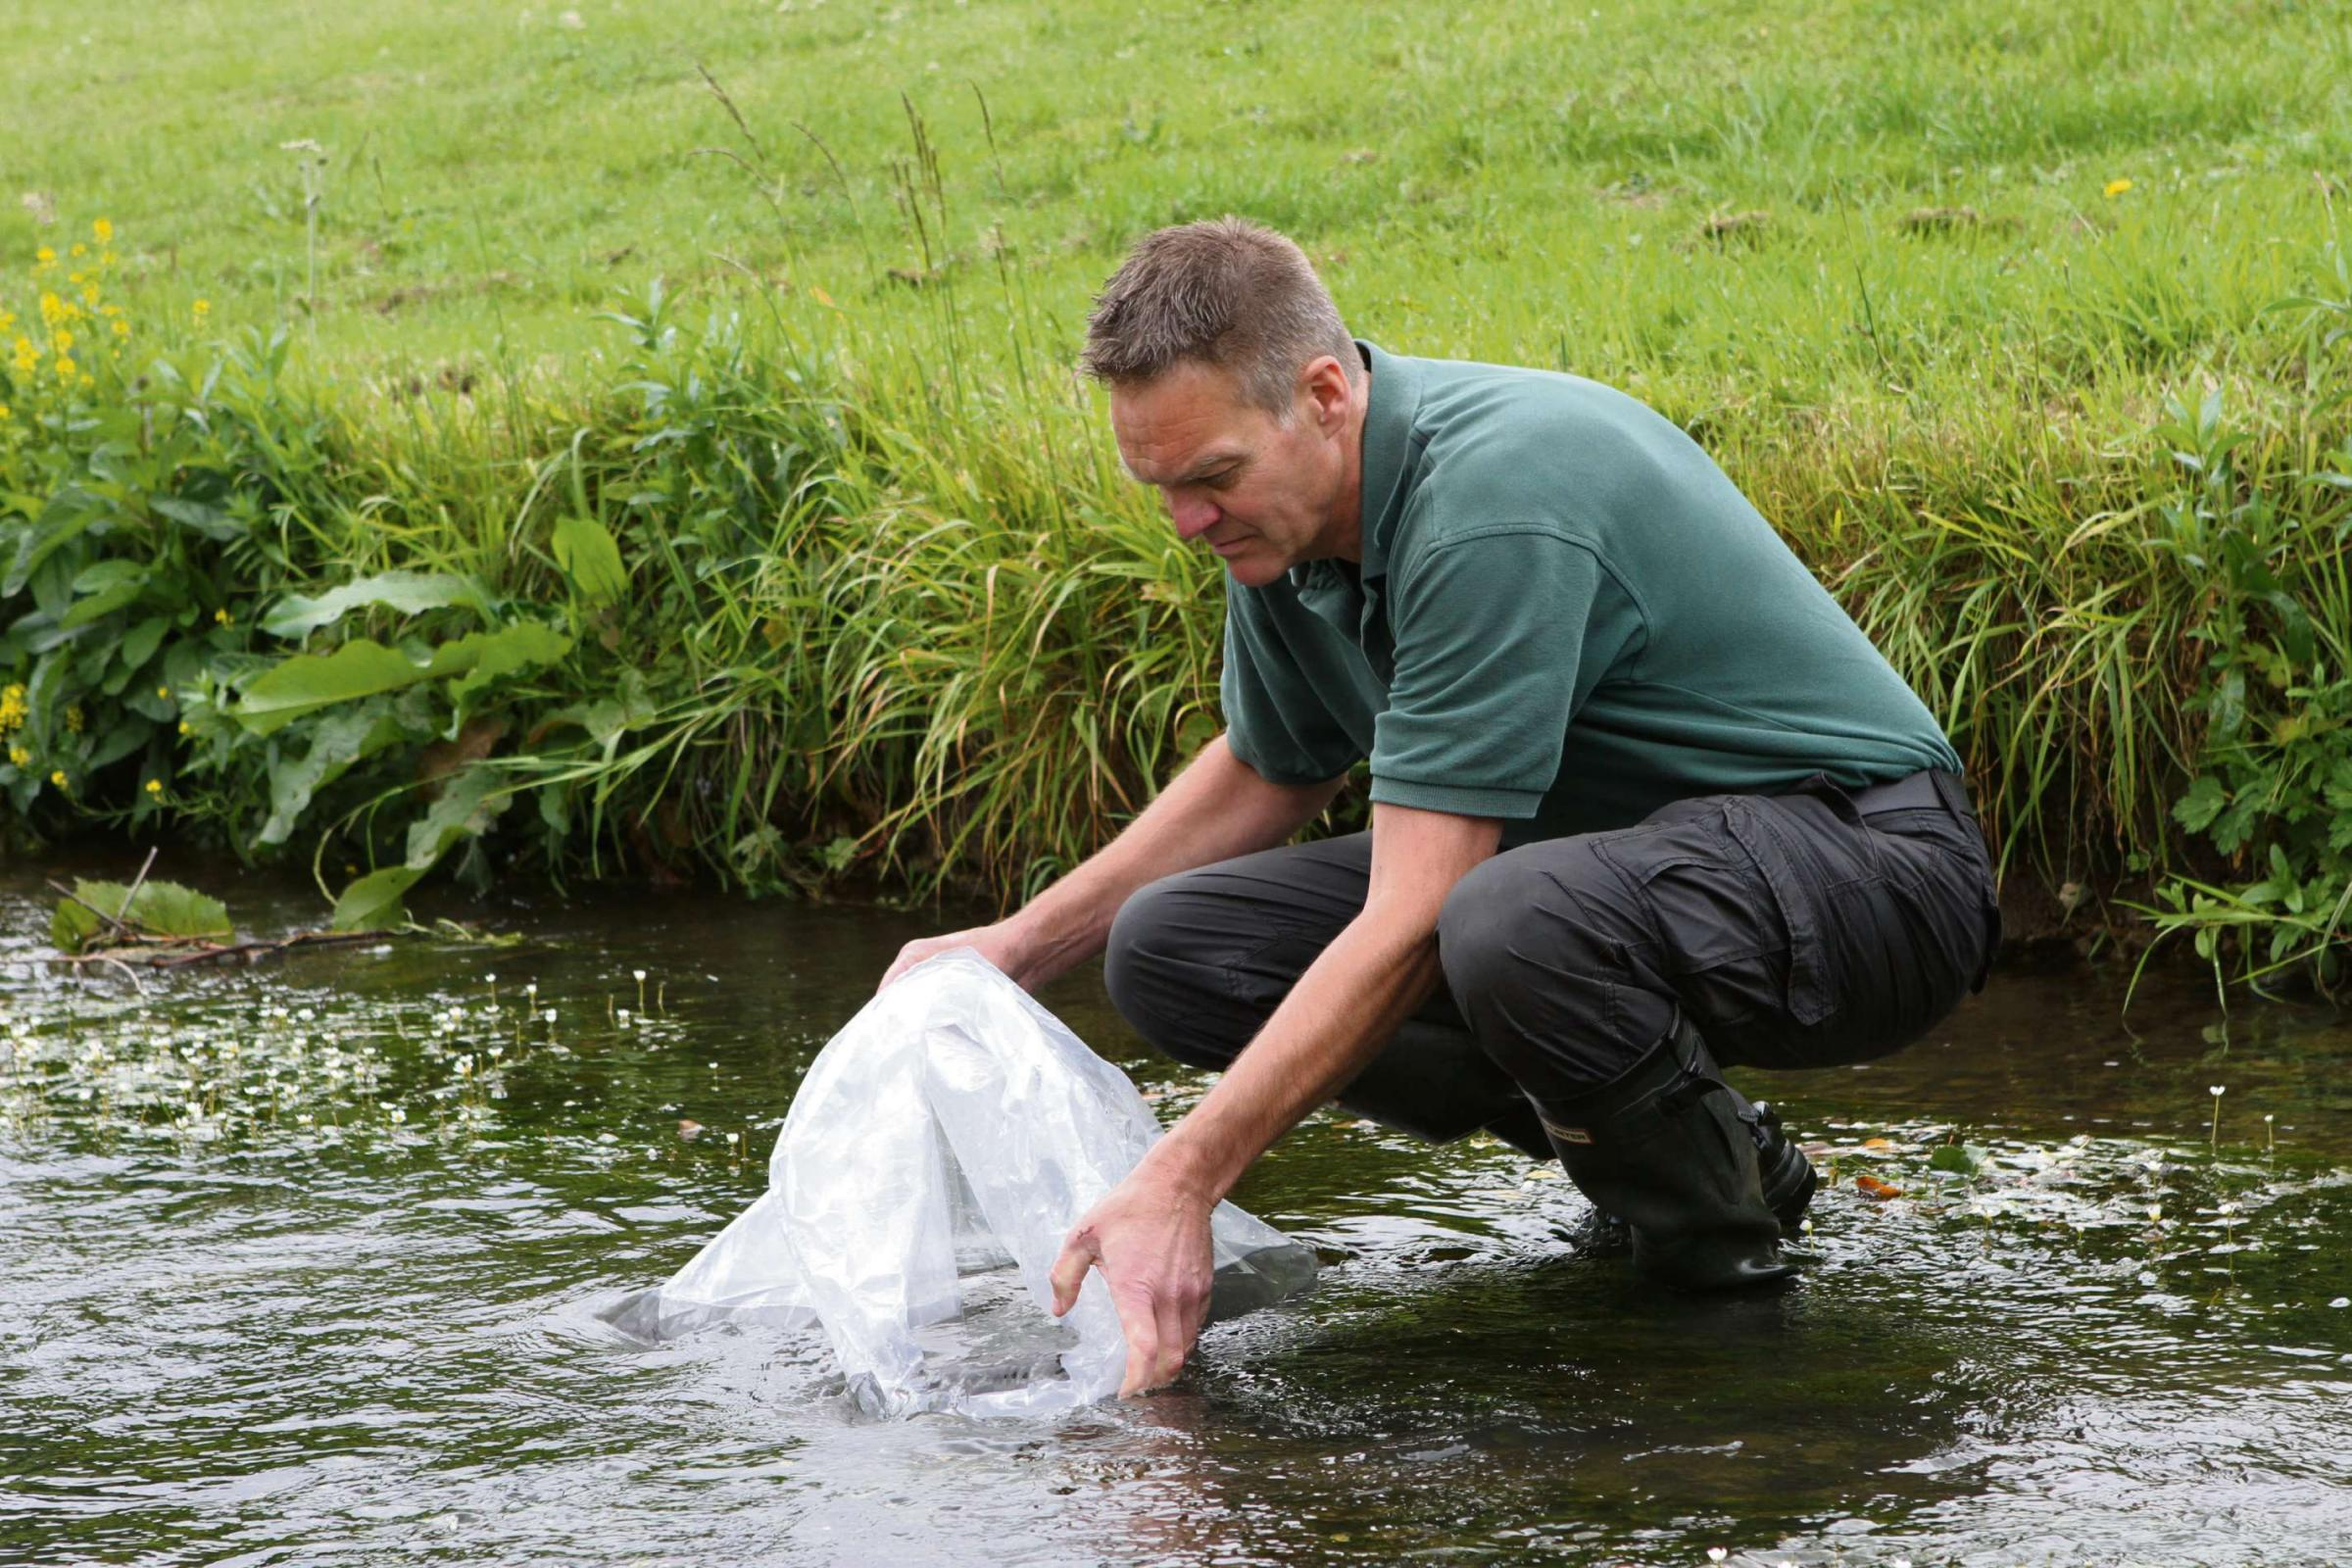 FLASH BACK: Paul Frear from the Environment Agency putting Grayling into Clow Beck, near Darlington, in 2011.